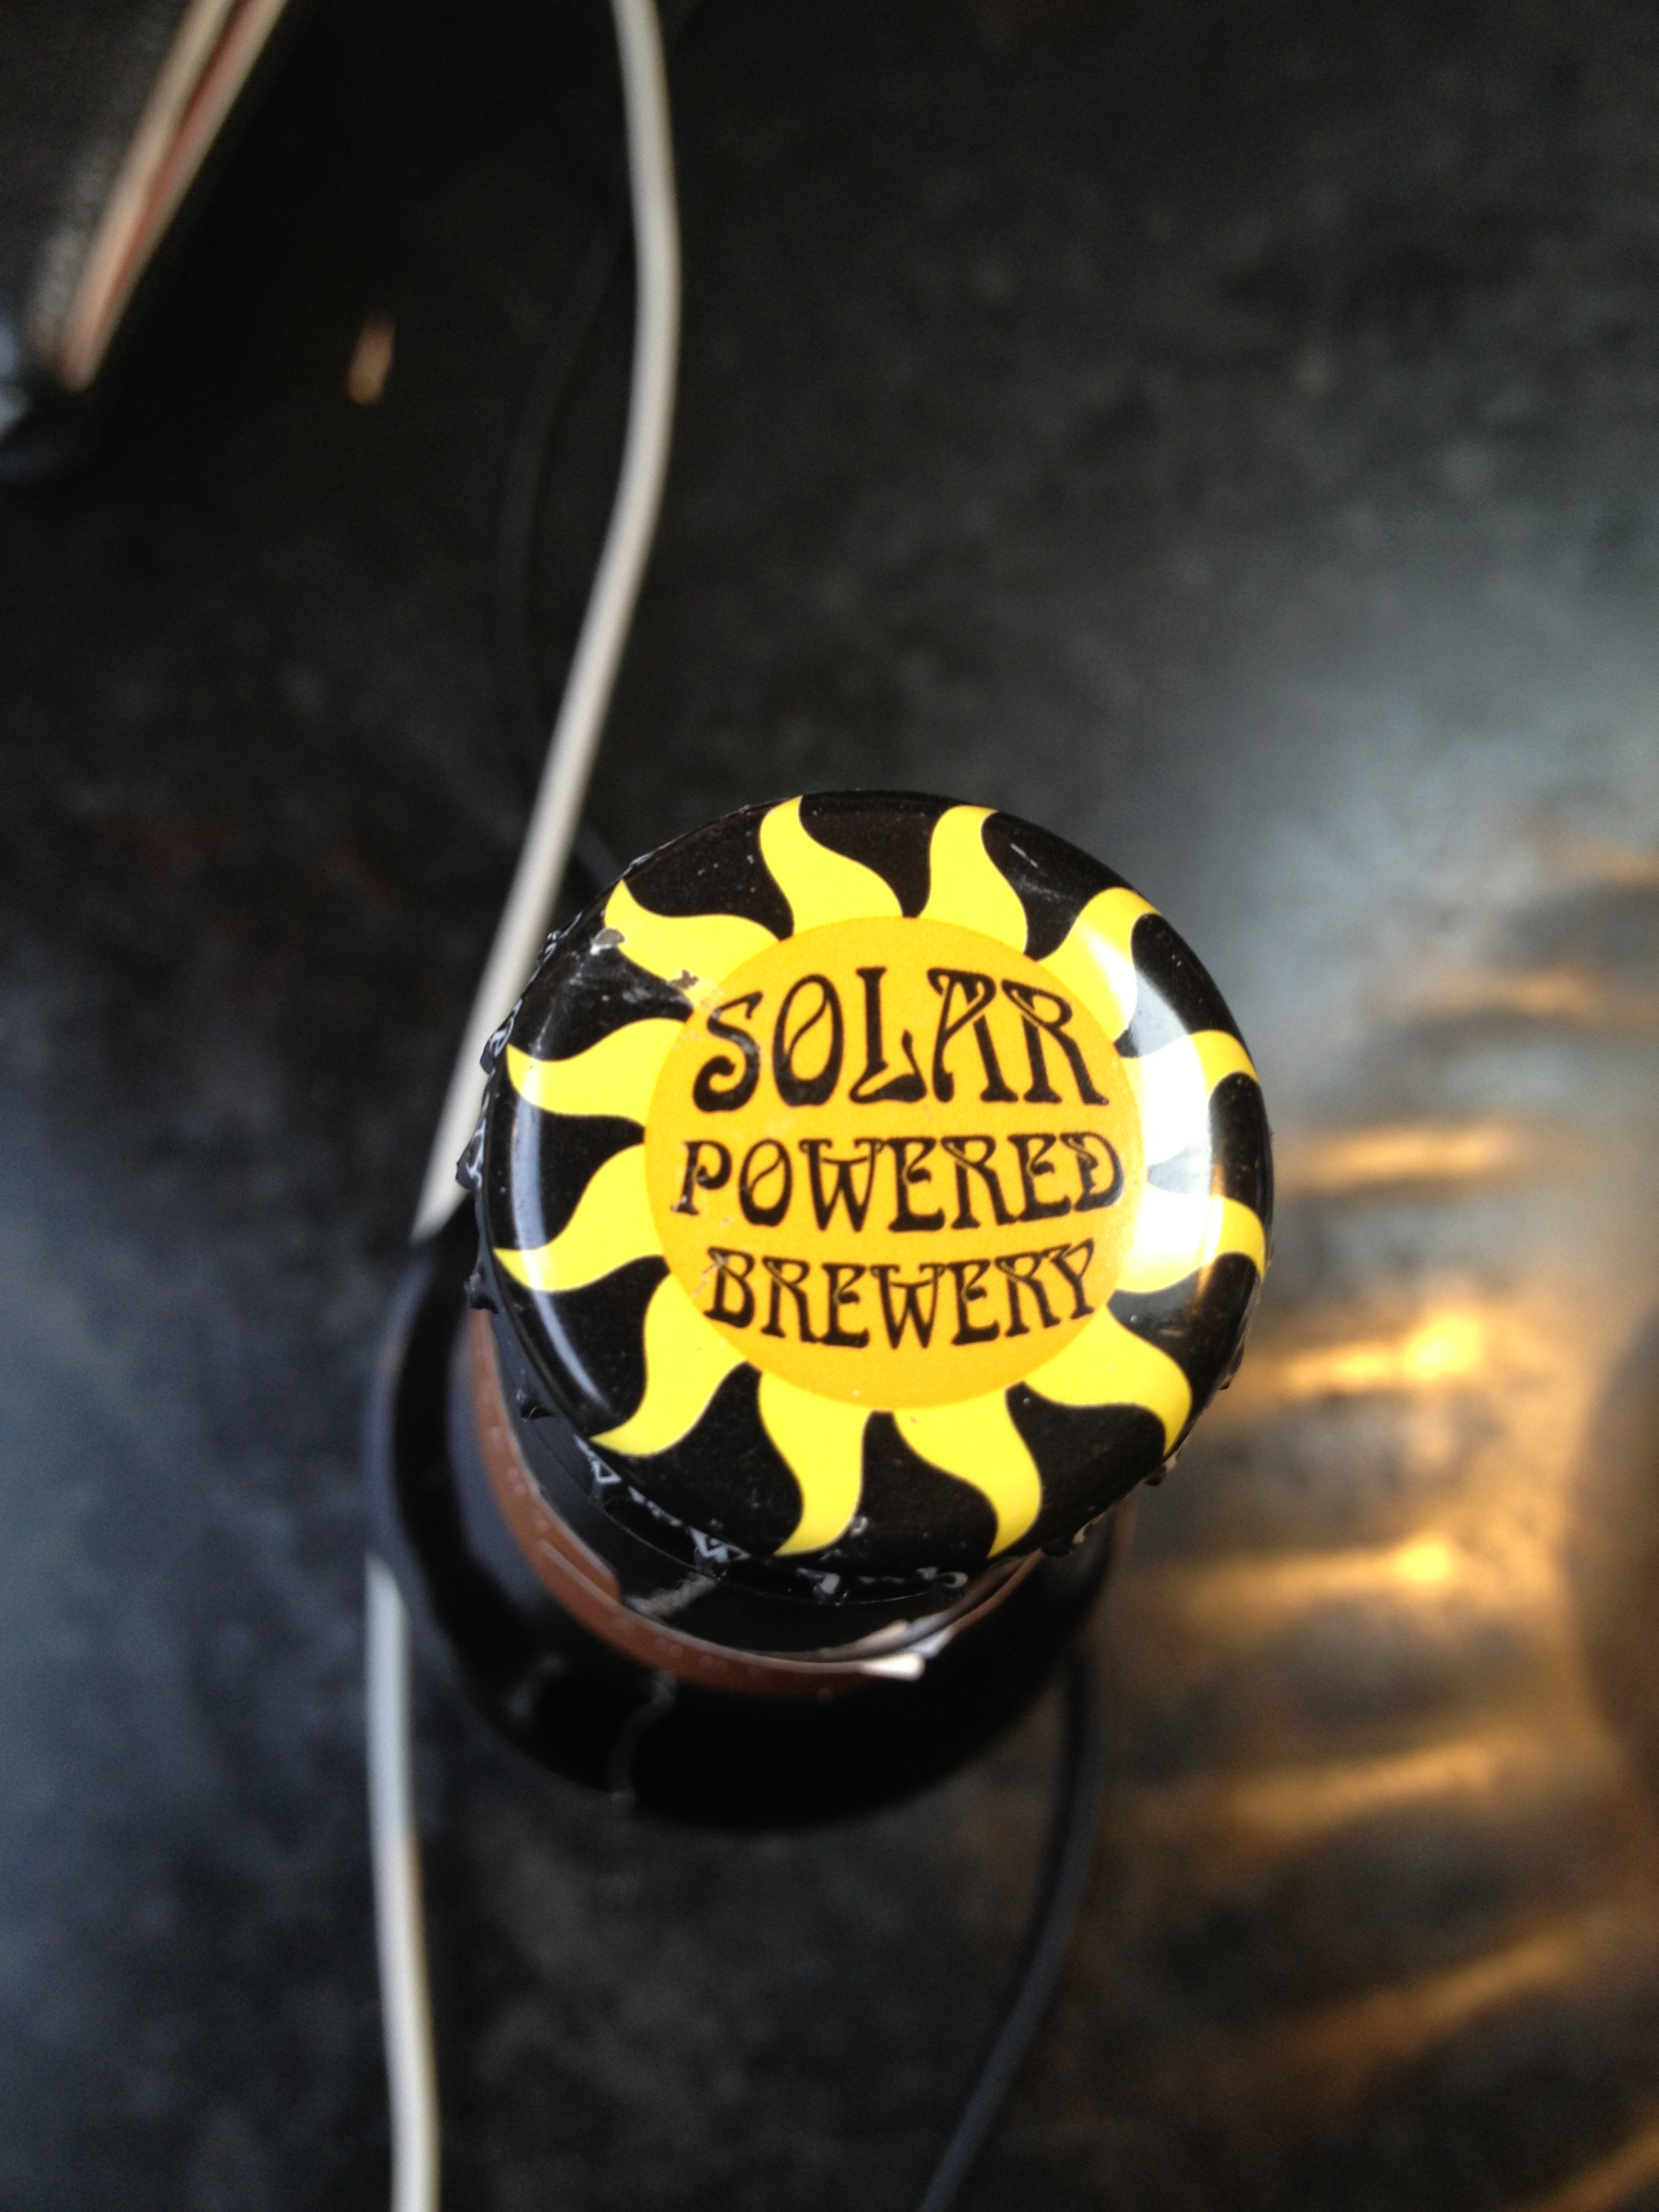 Drinking beer solar style - Anderson Valley Brewery in CA is solar powered